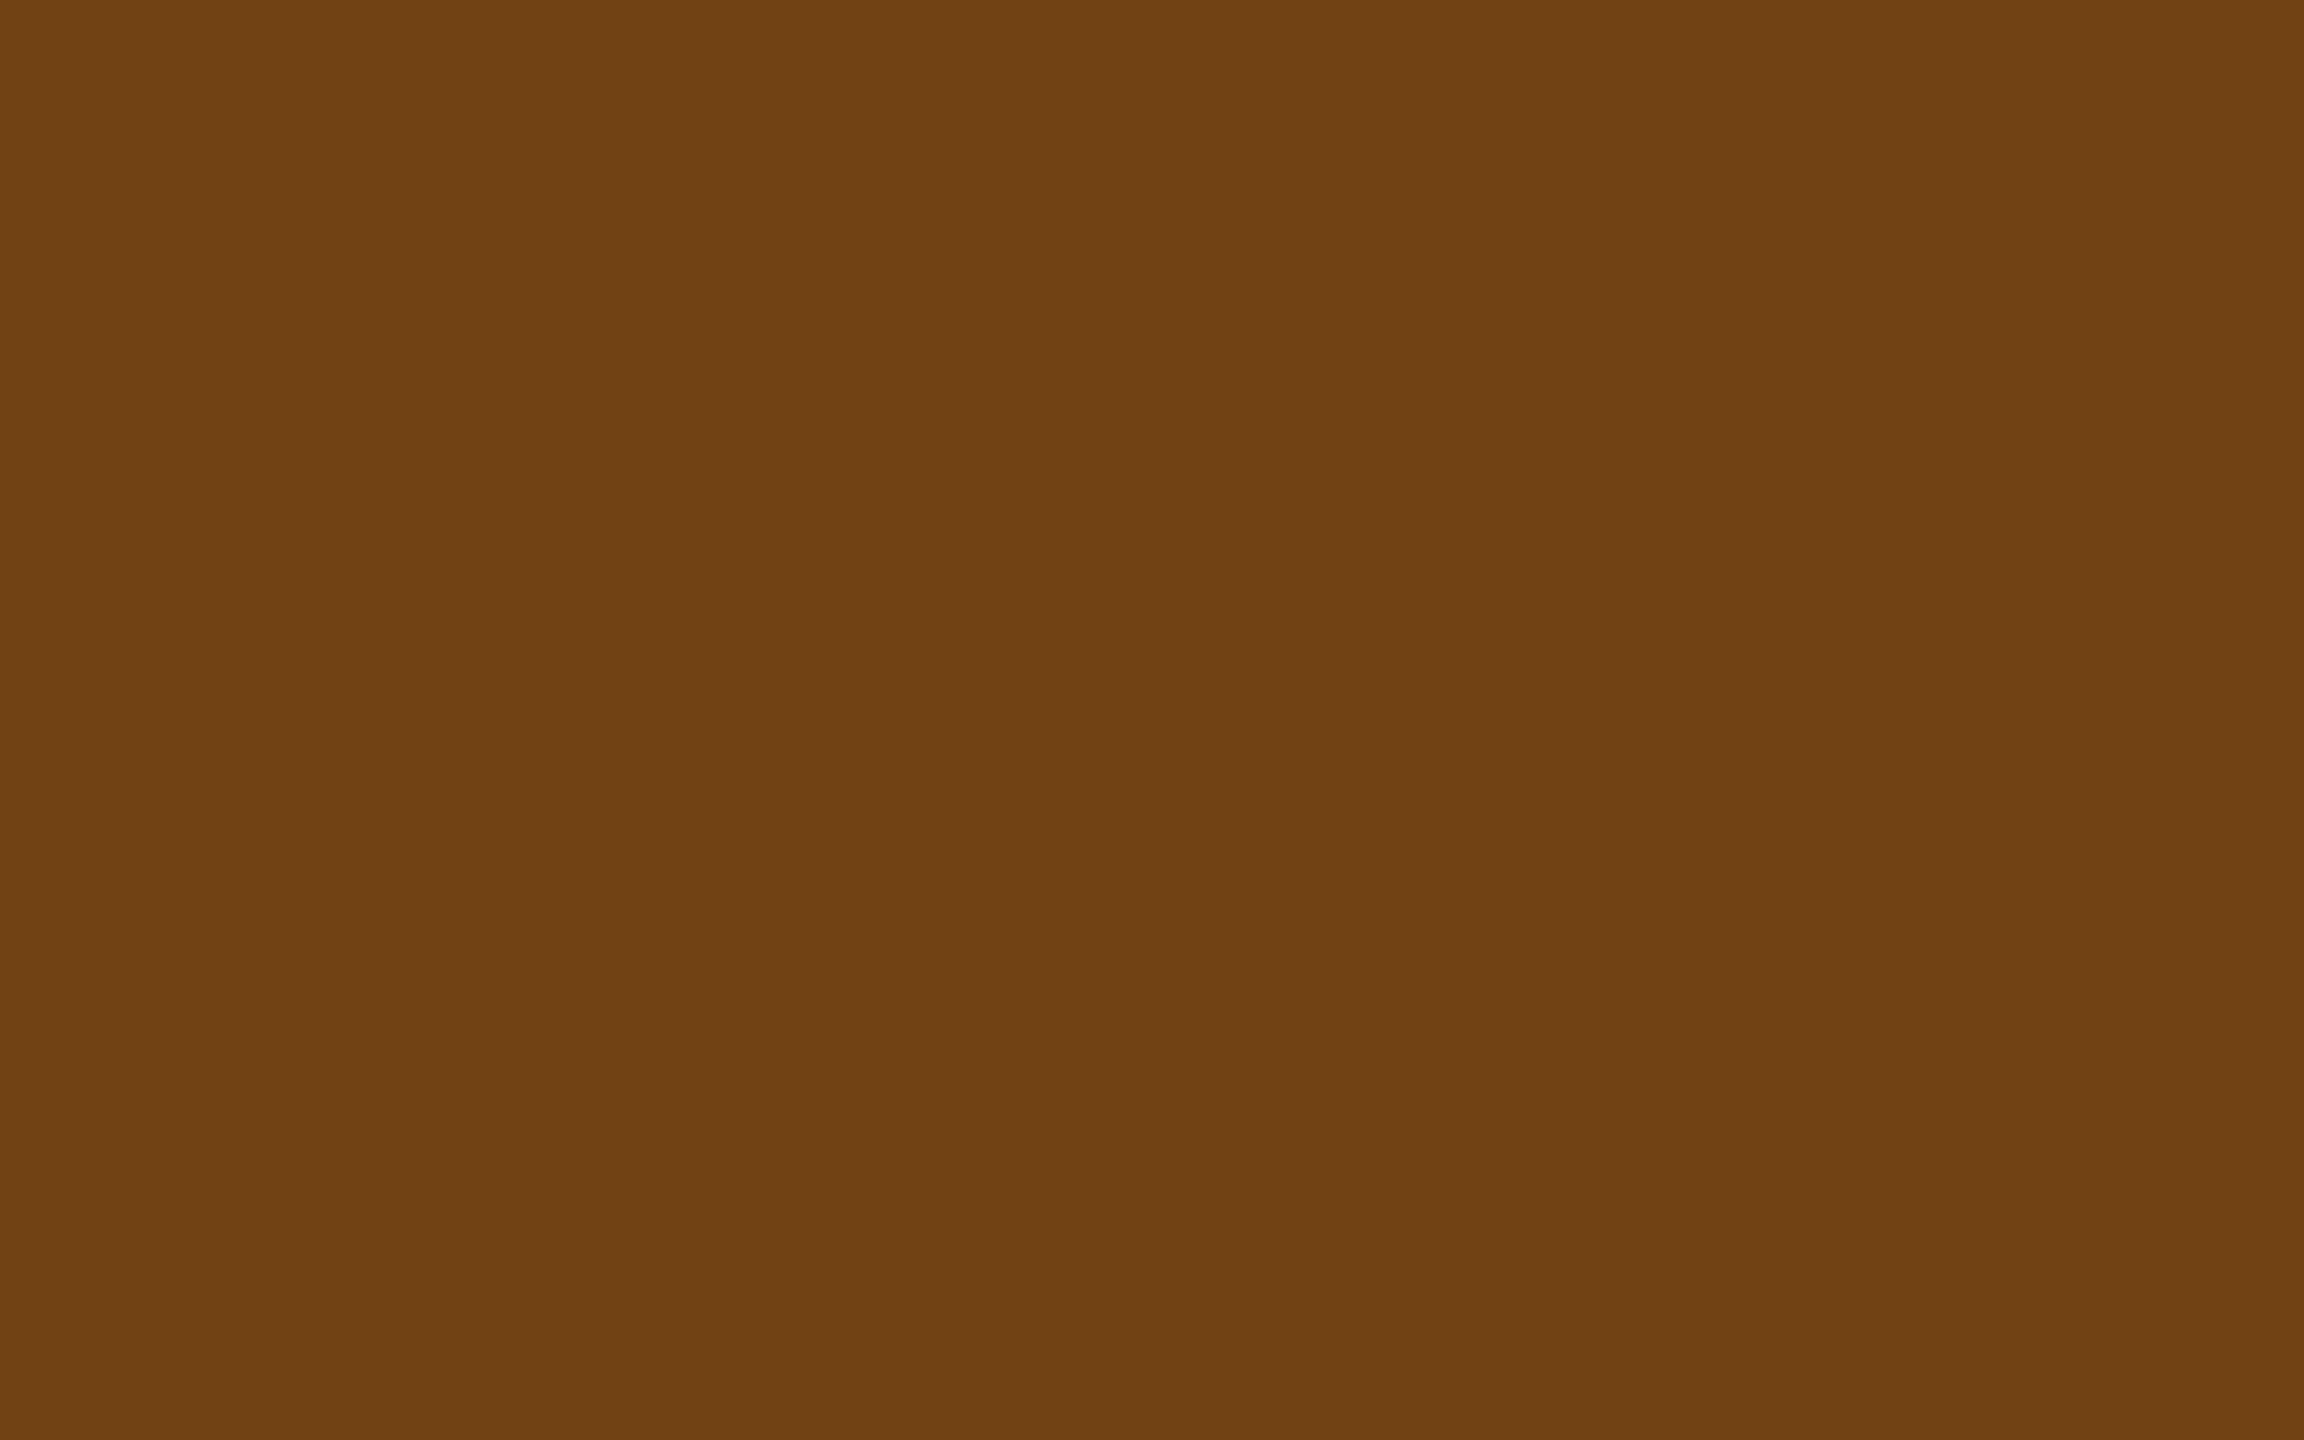 2304x1440 Sepia Solid Color Background